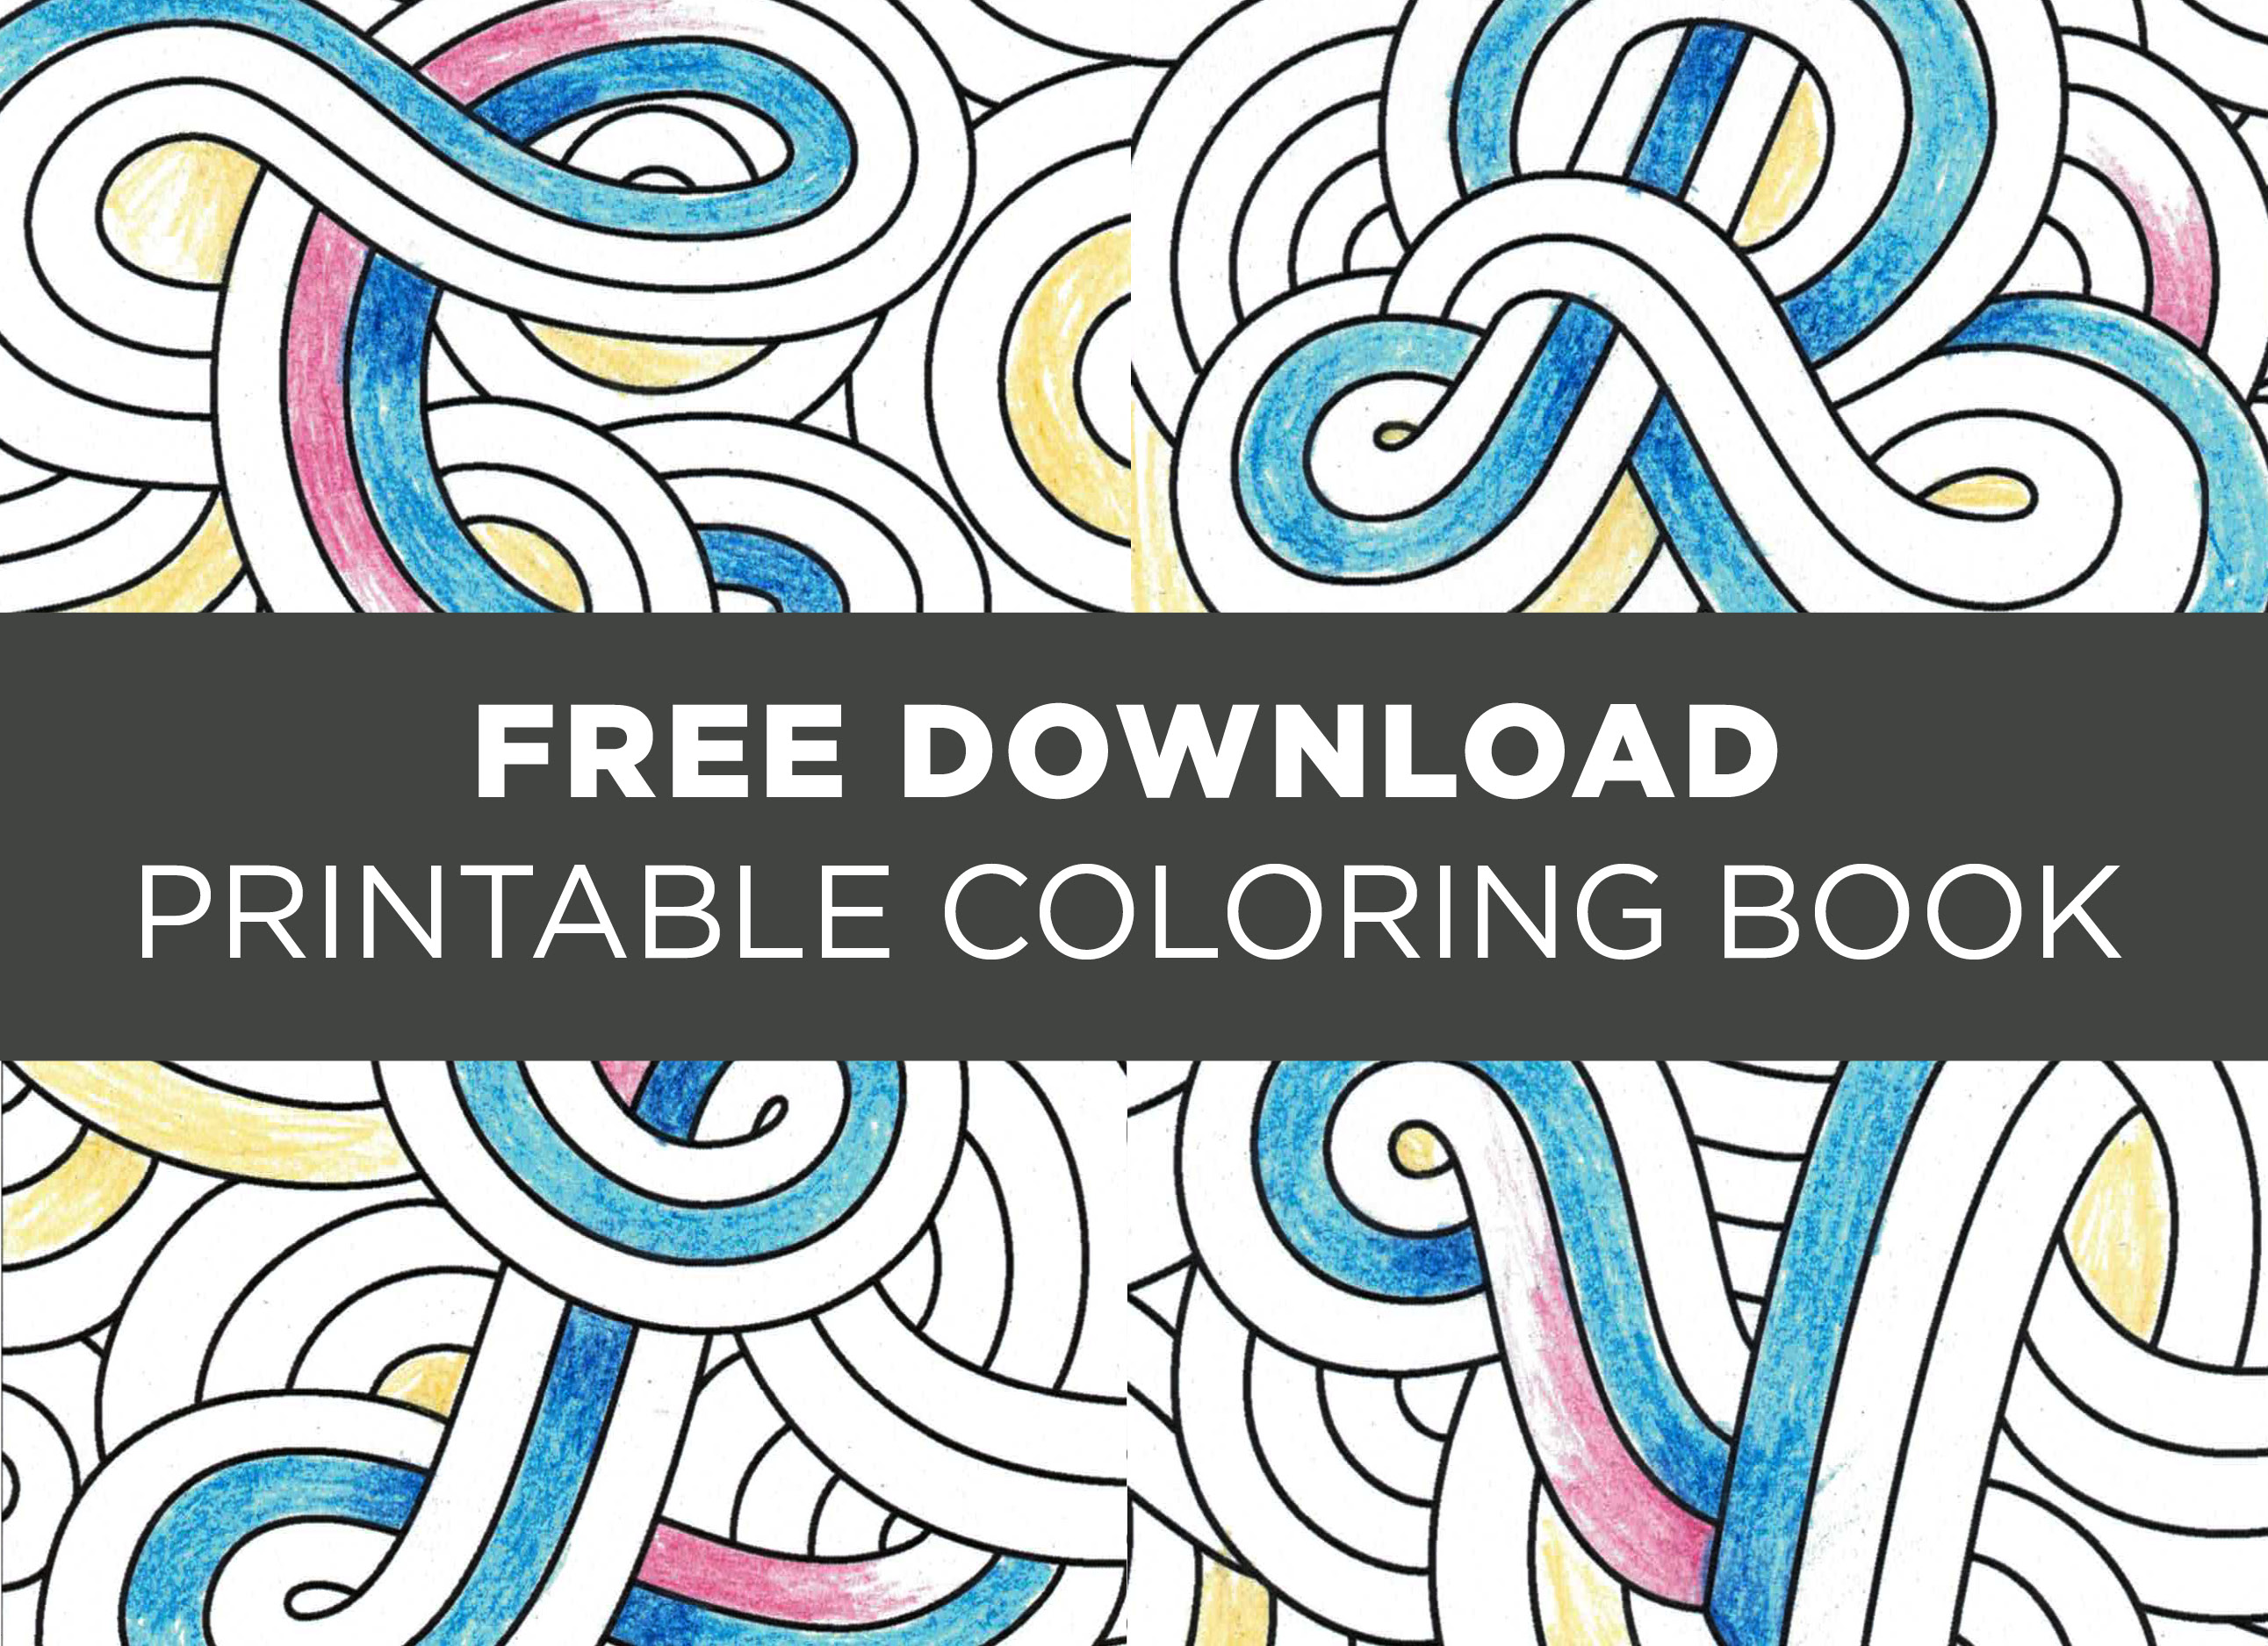 download the free creativelive printable coloring book download - Free Download Colouring Book